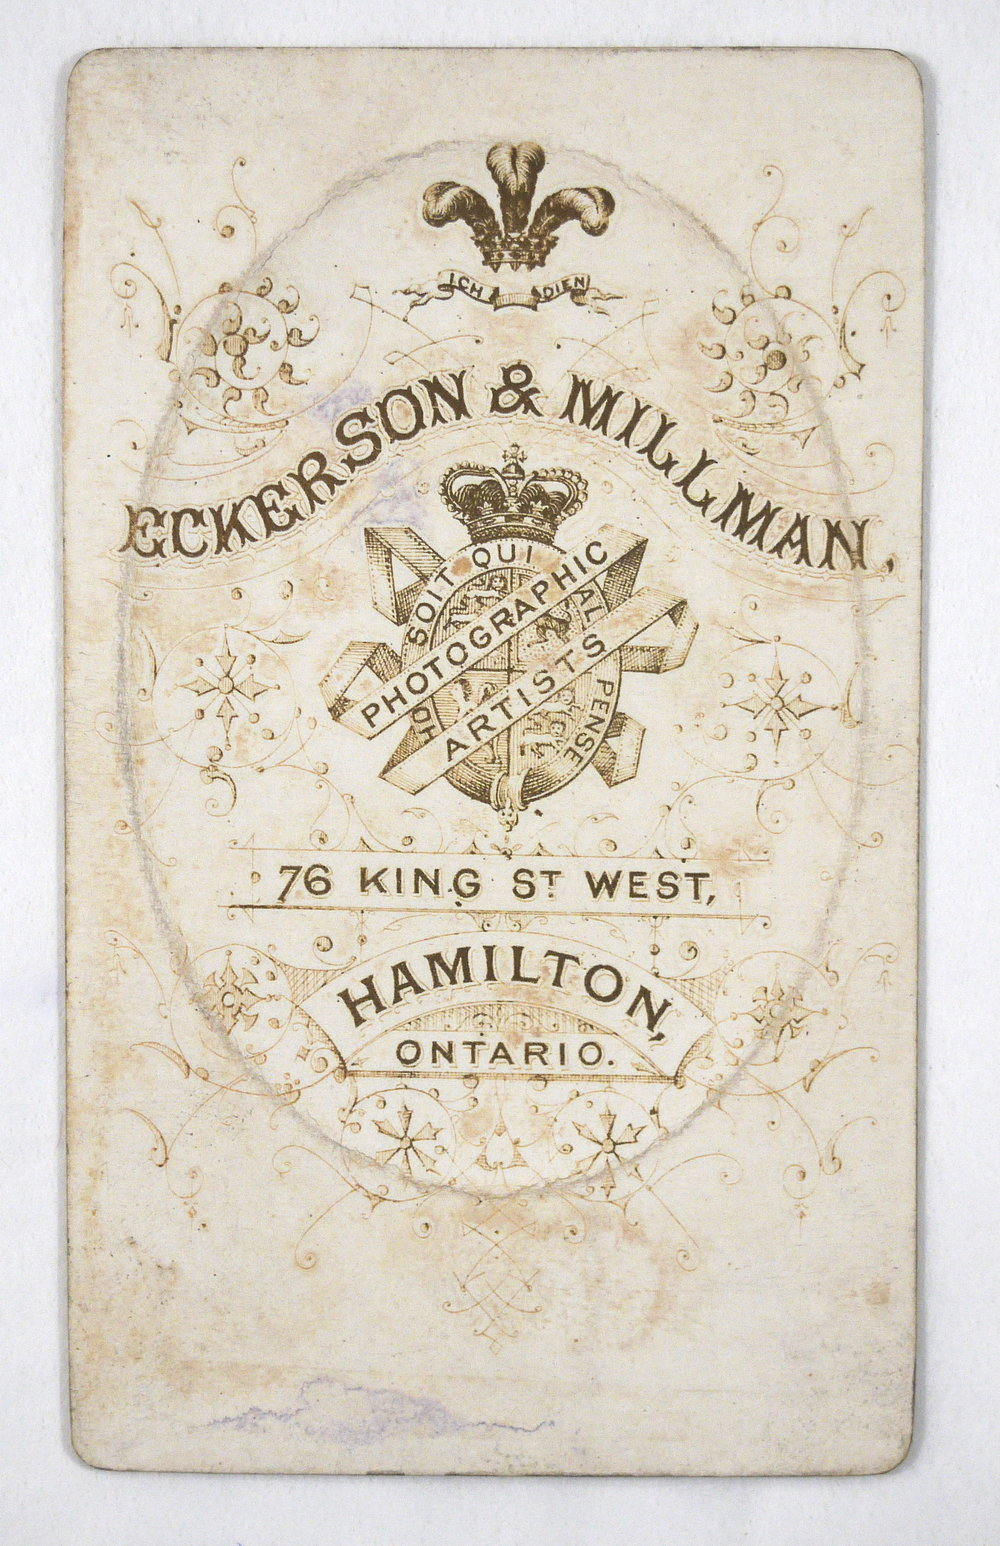 Carte de visite - Canadian photography studio logo on verso